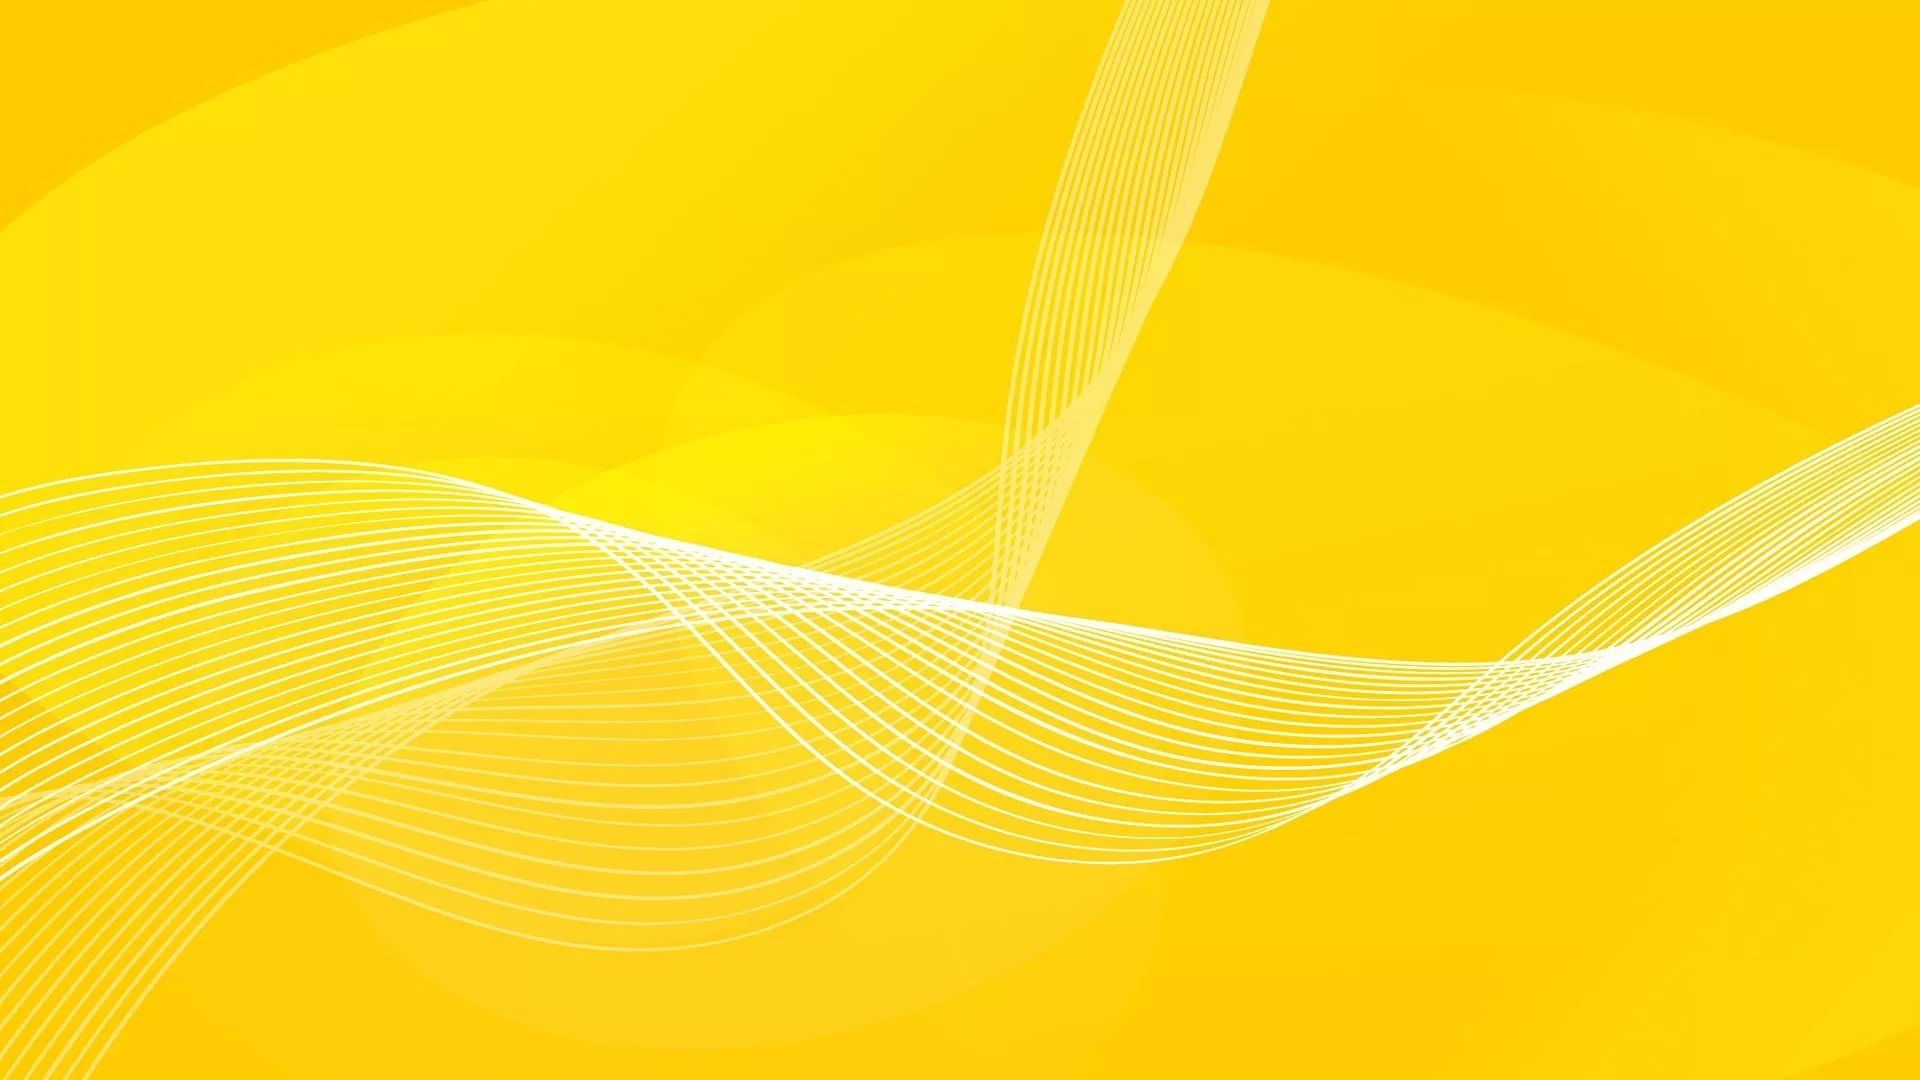 Yellow Abstract Image